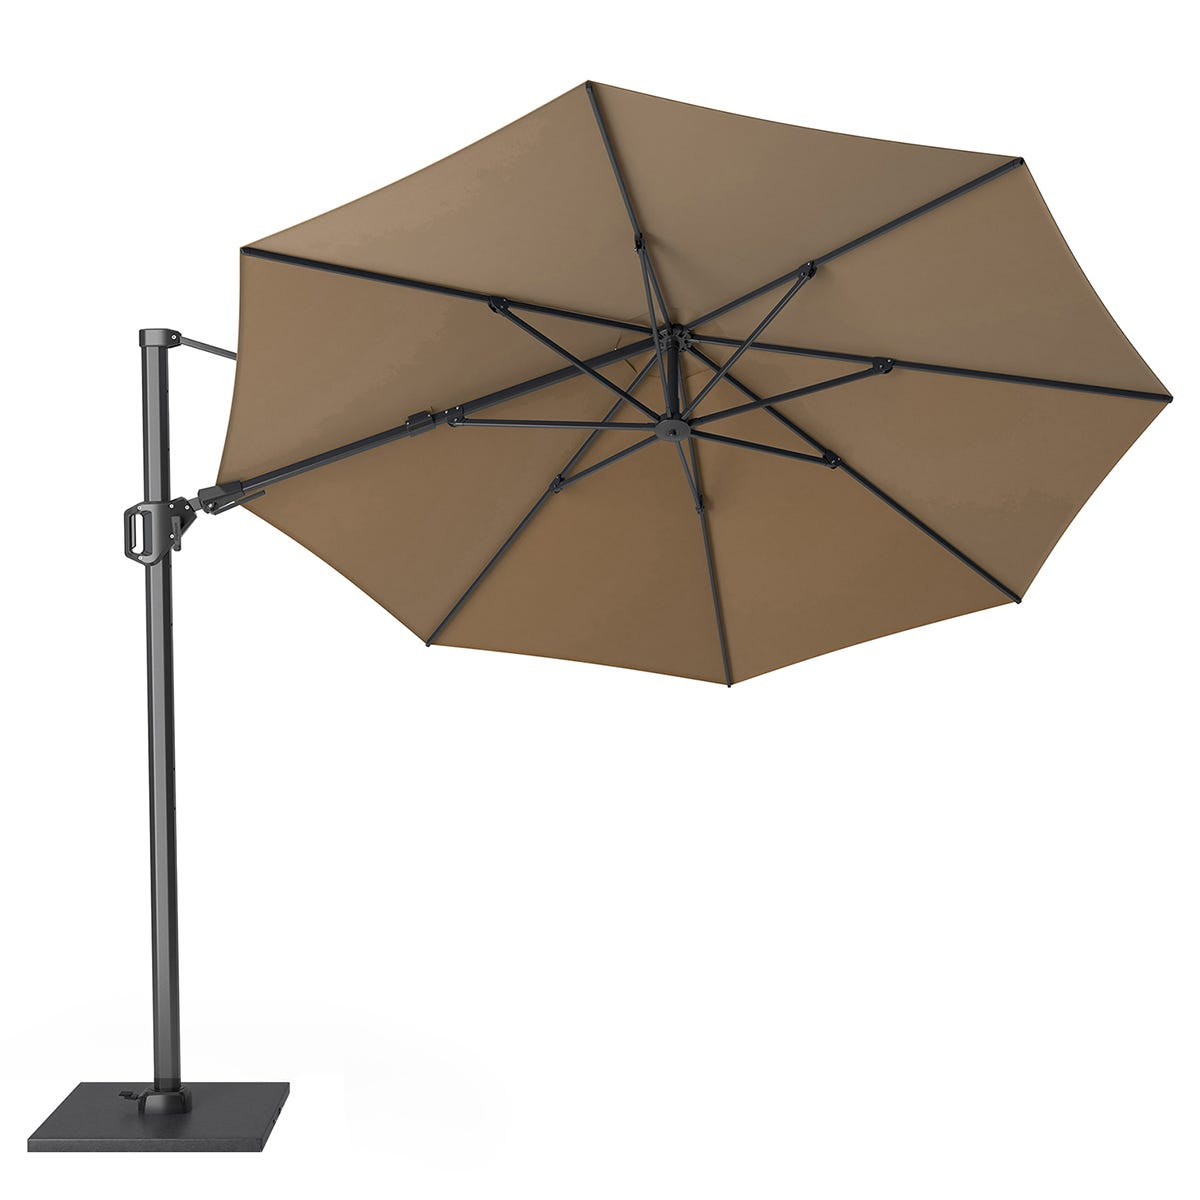 Pacific Lifestyle Challenger T2 3.5m Round Taupe Parasol with Burnt Black Granite 90KG Parasol Base